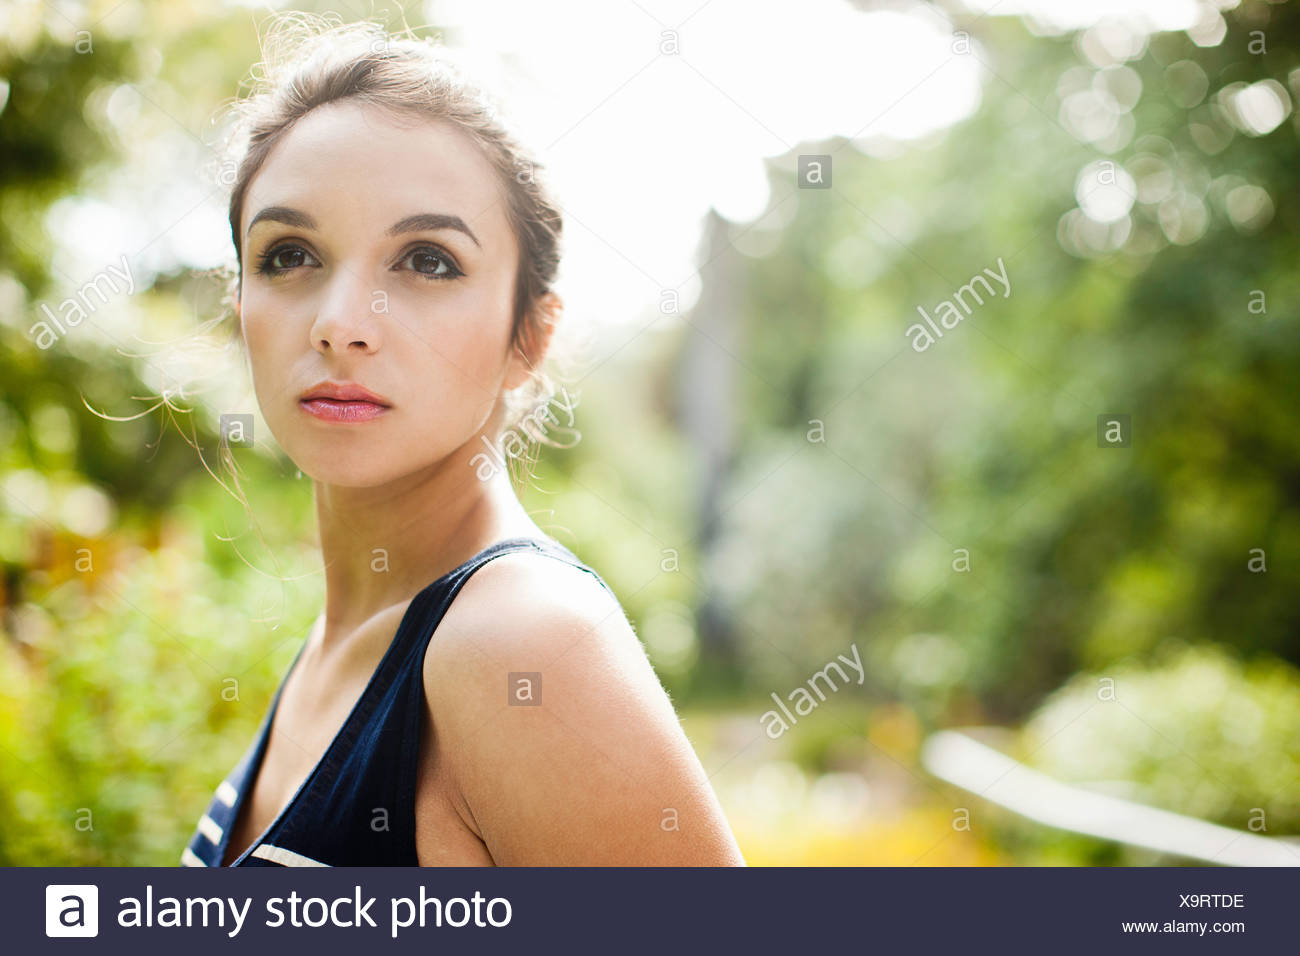 Young woman looking away, close up - Stock Image